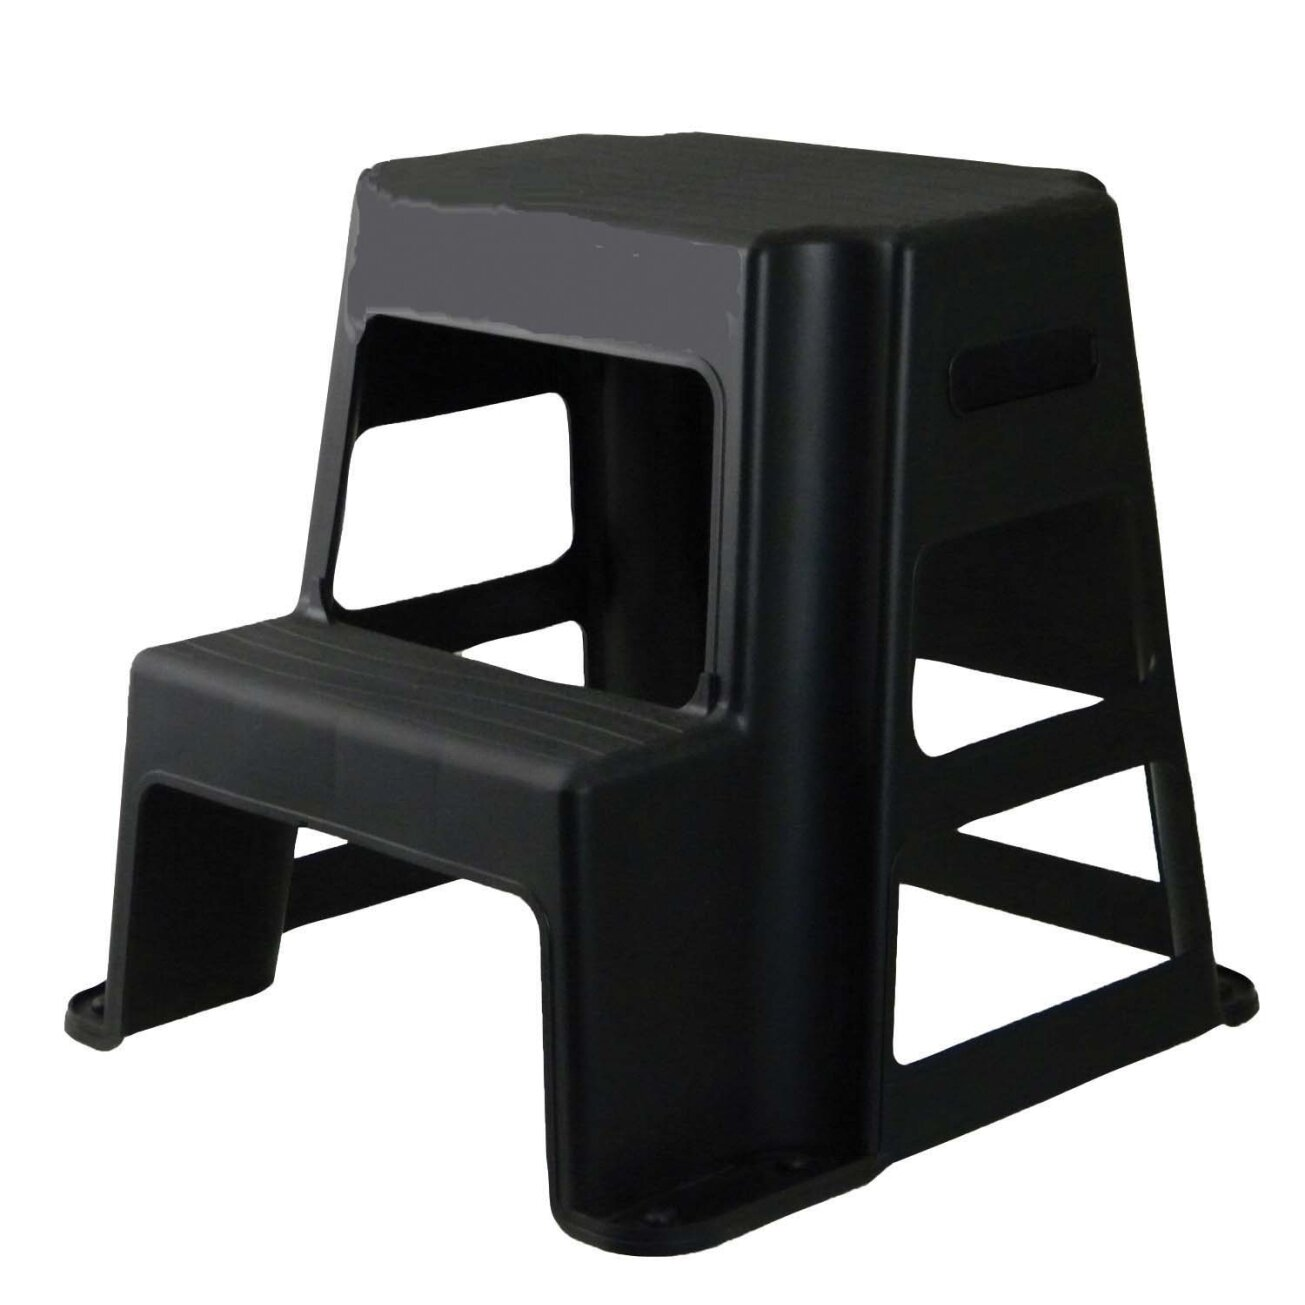 Inspirations Lowes Step Stool Three Step Step Stool 3